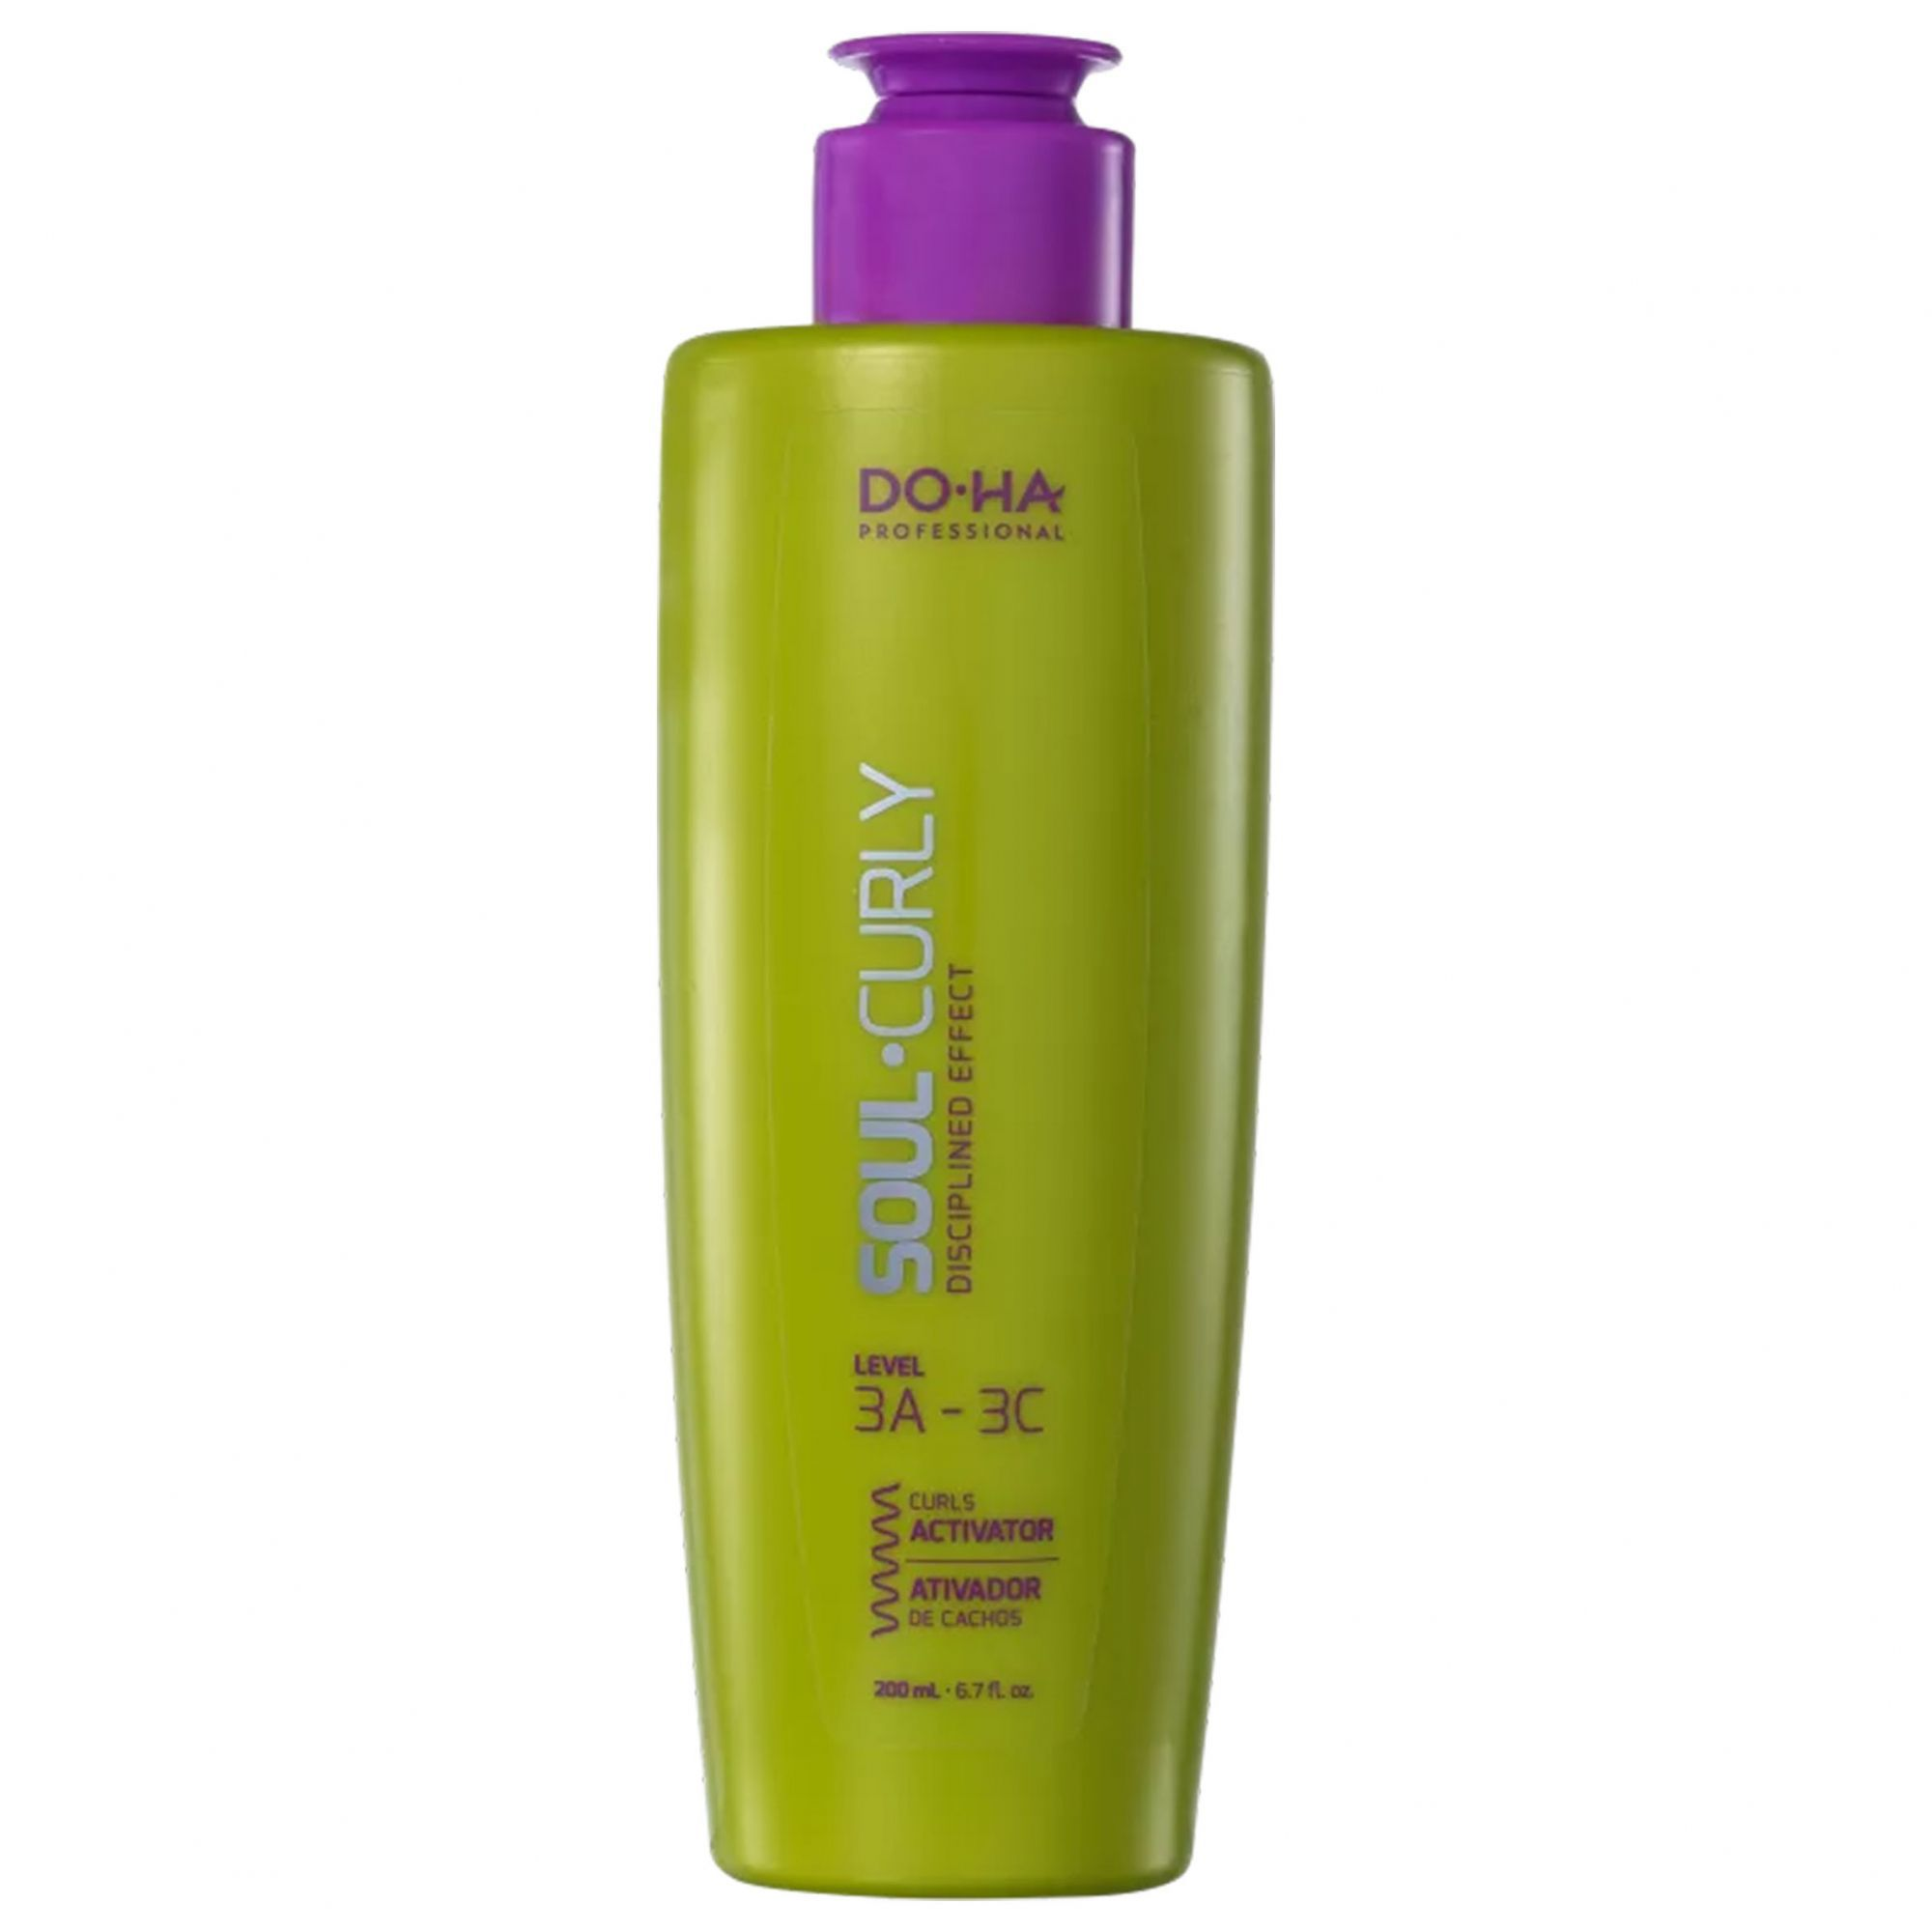 DO.HA Soul Curly 3A/3C - Ativador de Cachos 200ml